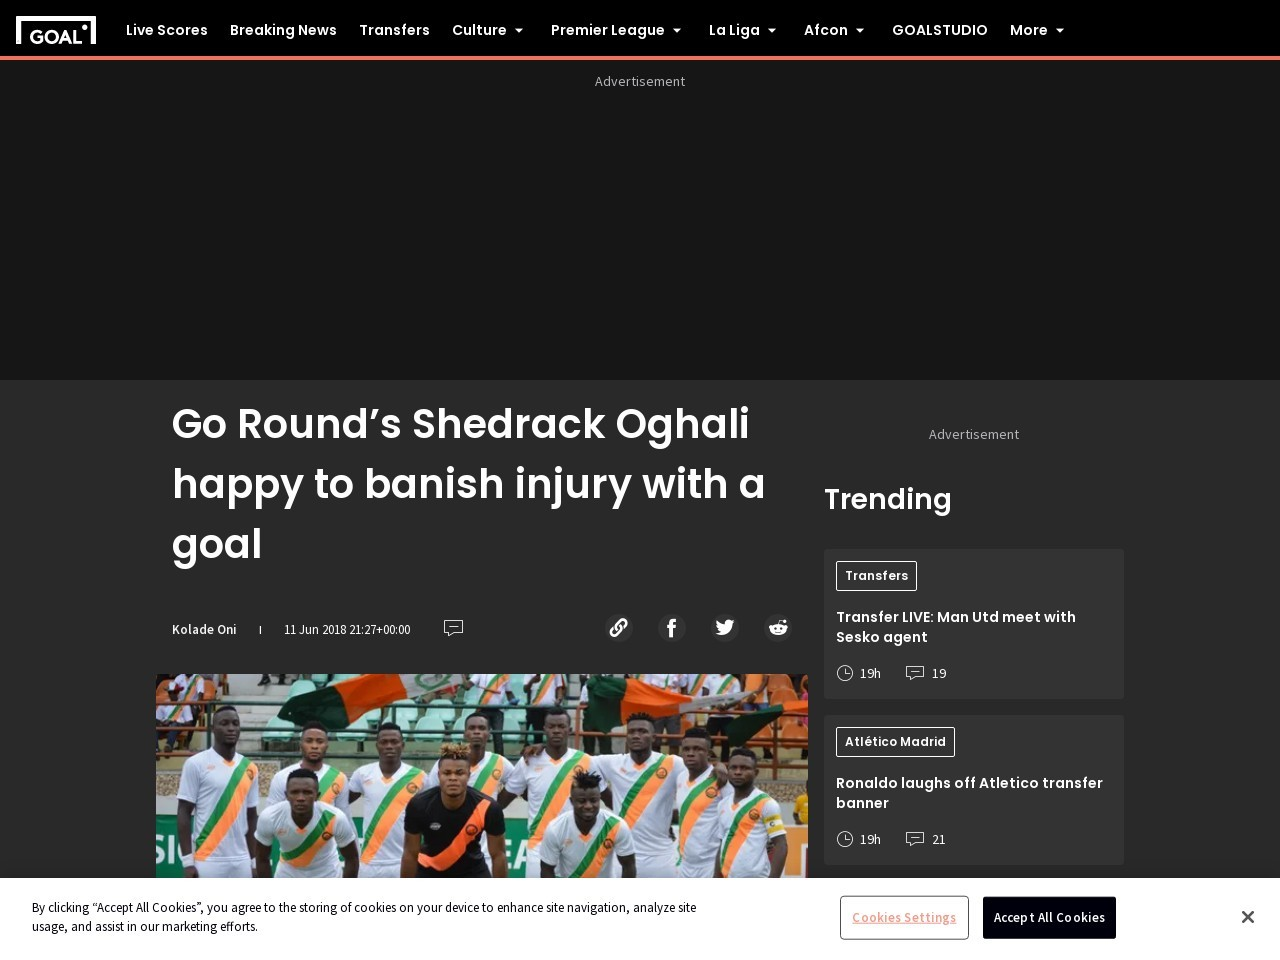 Go Round's Shedrack Oghali happy to banish injury with a goal